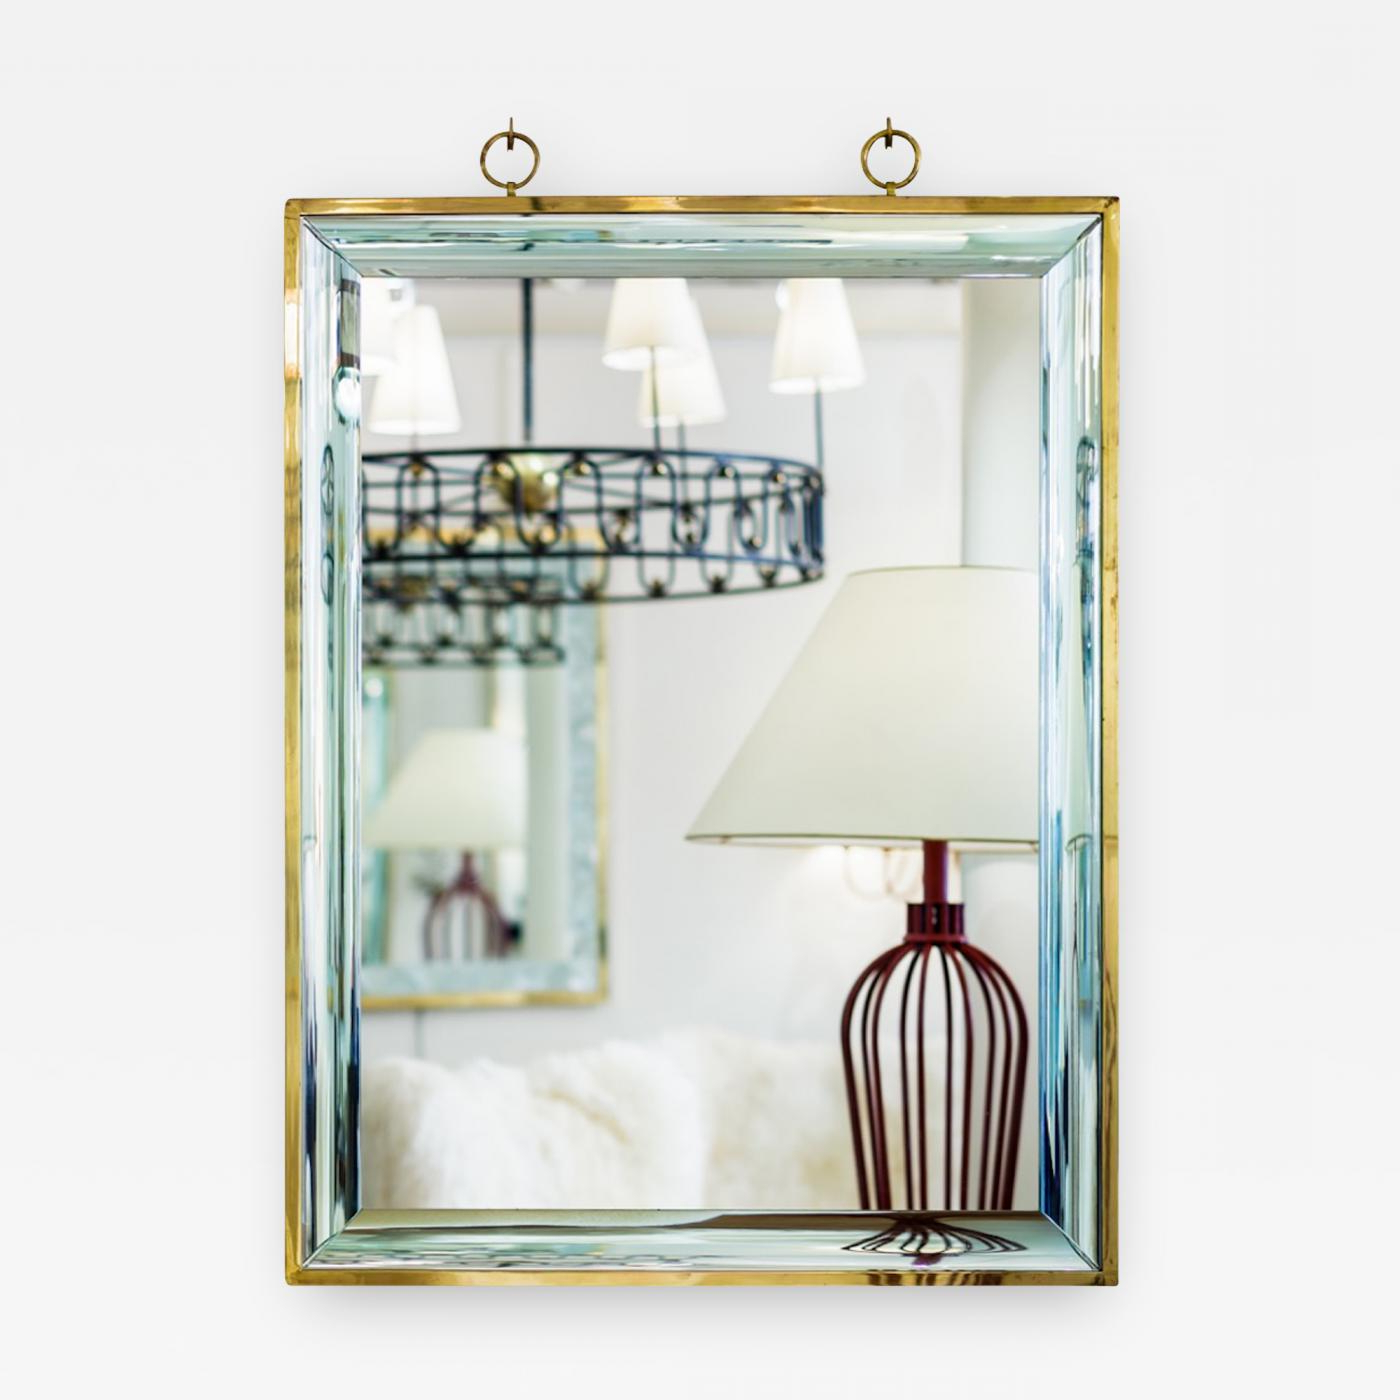 Dandre Wall Mirrors Within Best And Newest Andre Hayat – Andre Hayat Pure Design Mirror With Glass (Gallery 16 of 20)